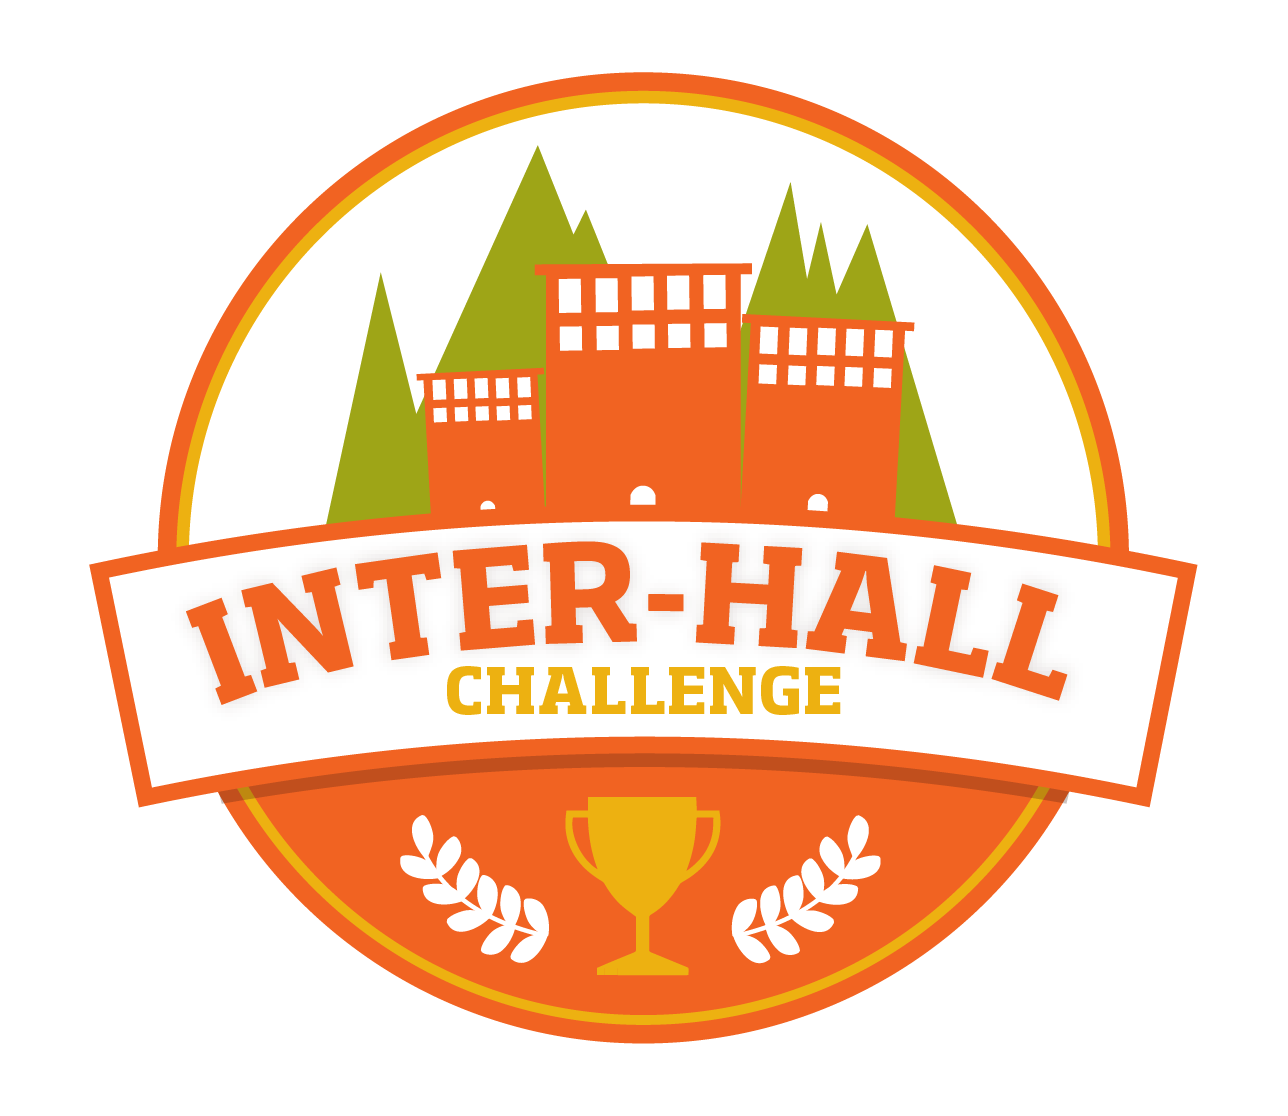 Inter-Hall Challenge logo